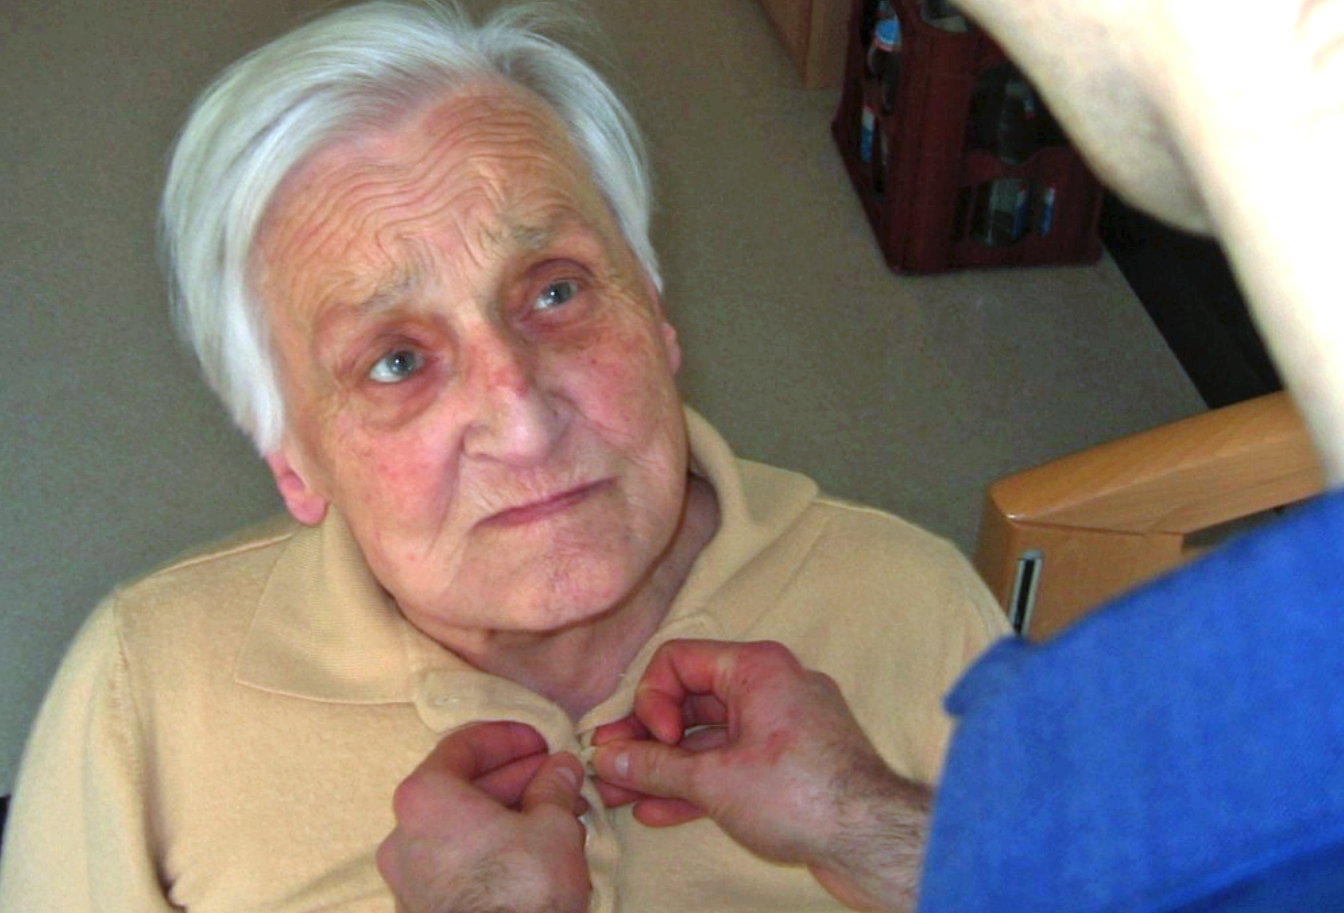 A senior citizen receiving help in getting dressed